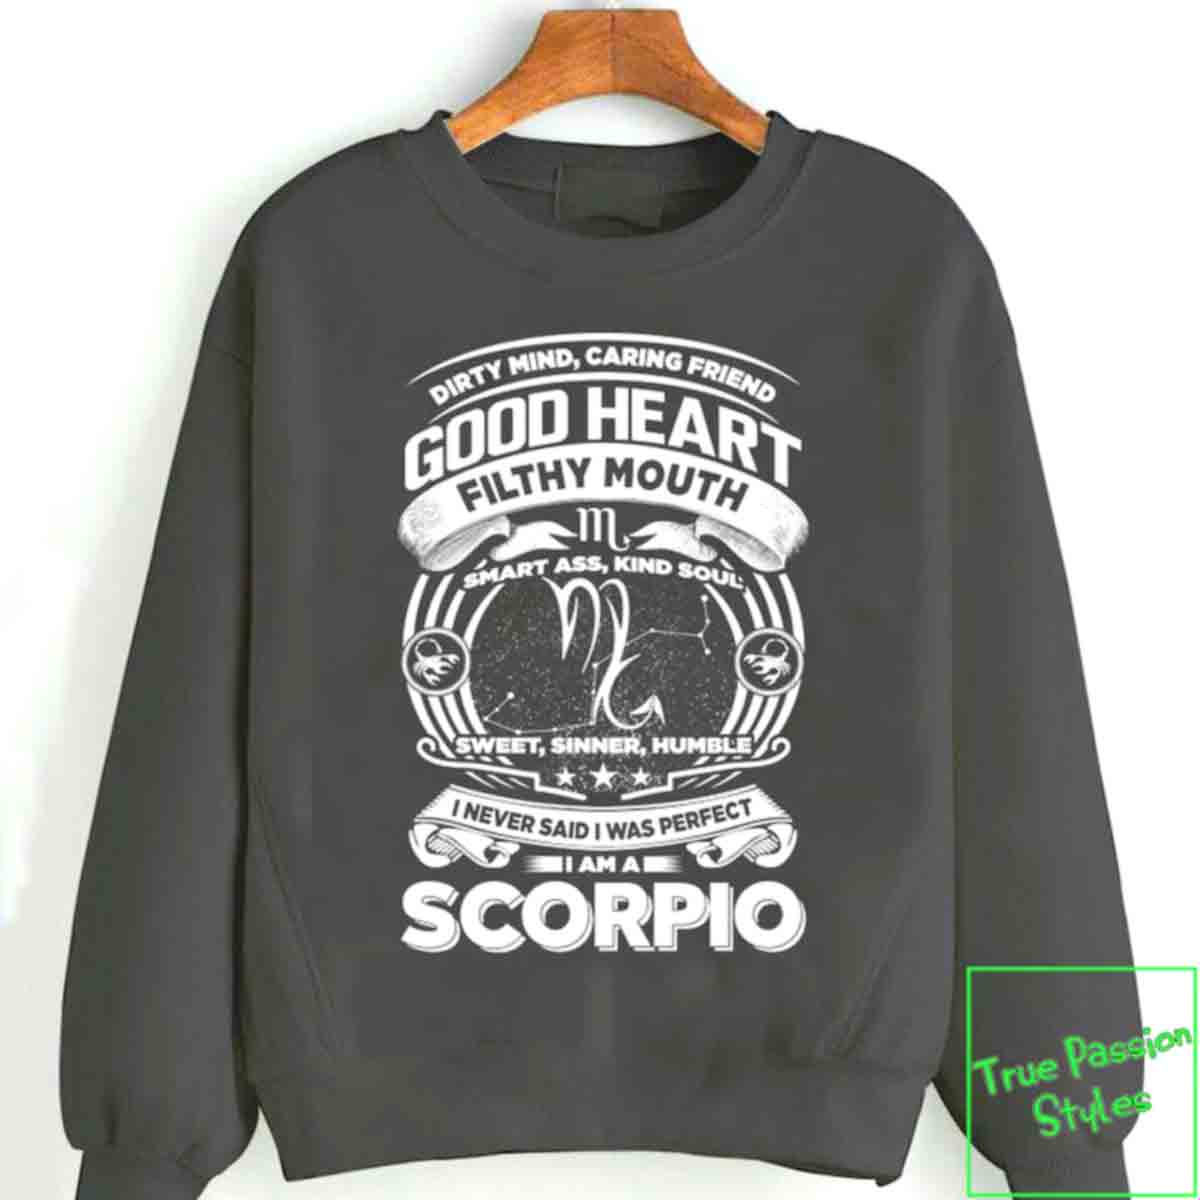 best-gifts-for-scorpio-personalized-scorpio-sweatshirt